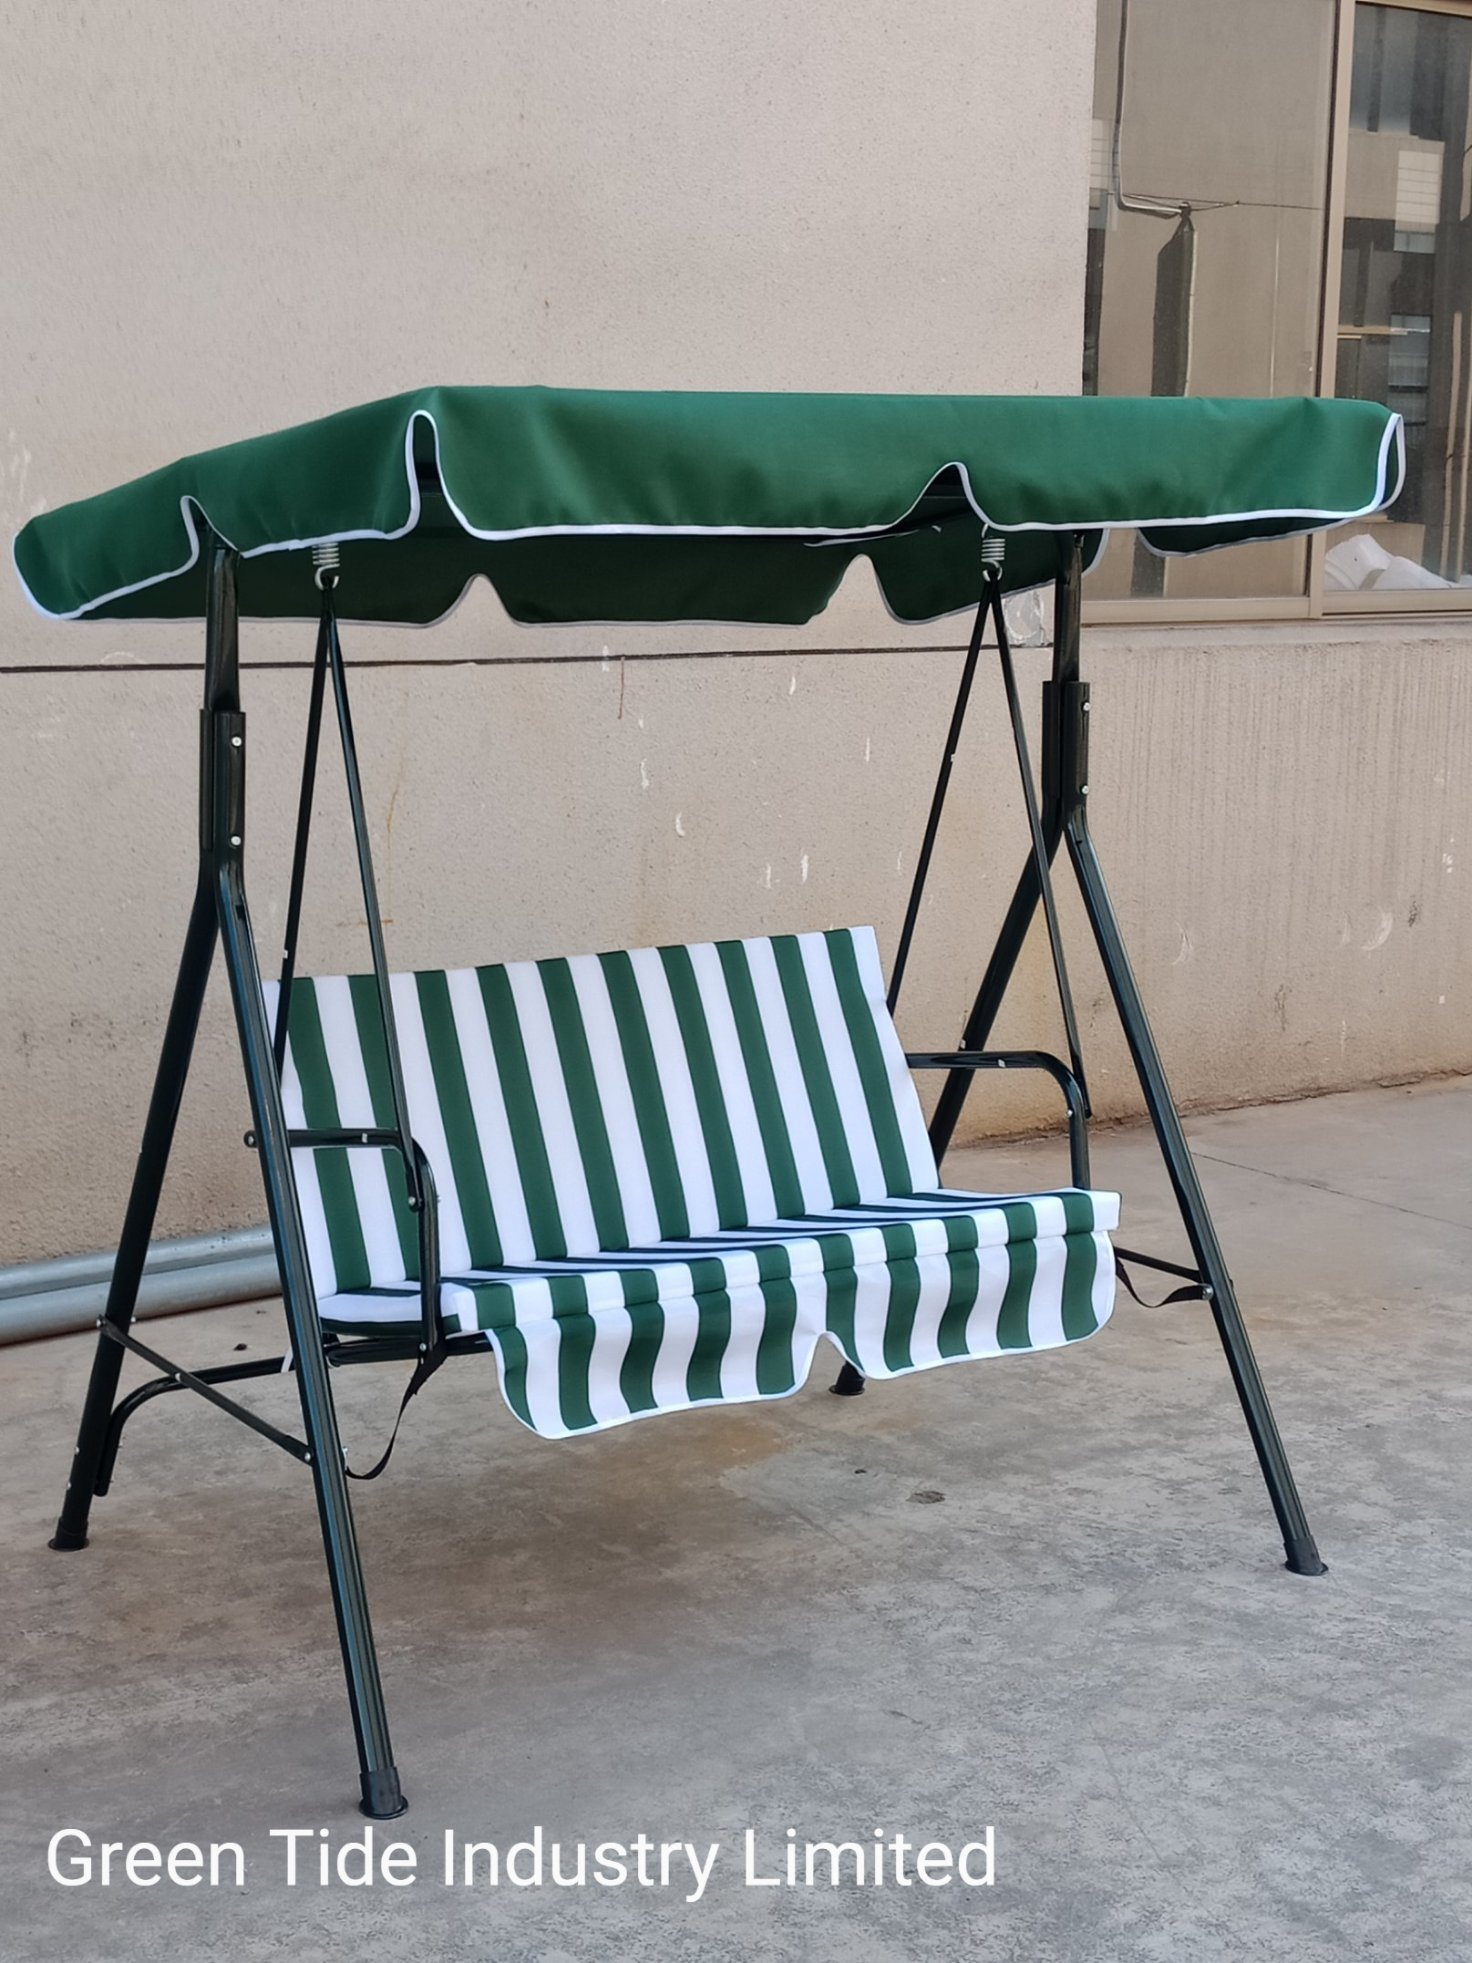 [Hot Item] Outdoor Garden Swing Chair Steel Double Person Furniture Supermarket Hot Sale Items With Regard To Outdoor Pvc Coated Polyester Porch Swings With Stand (View 20 of 25)